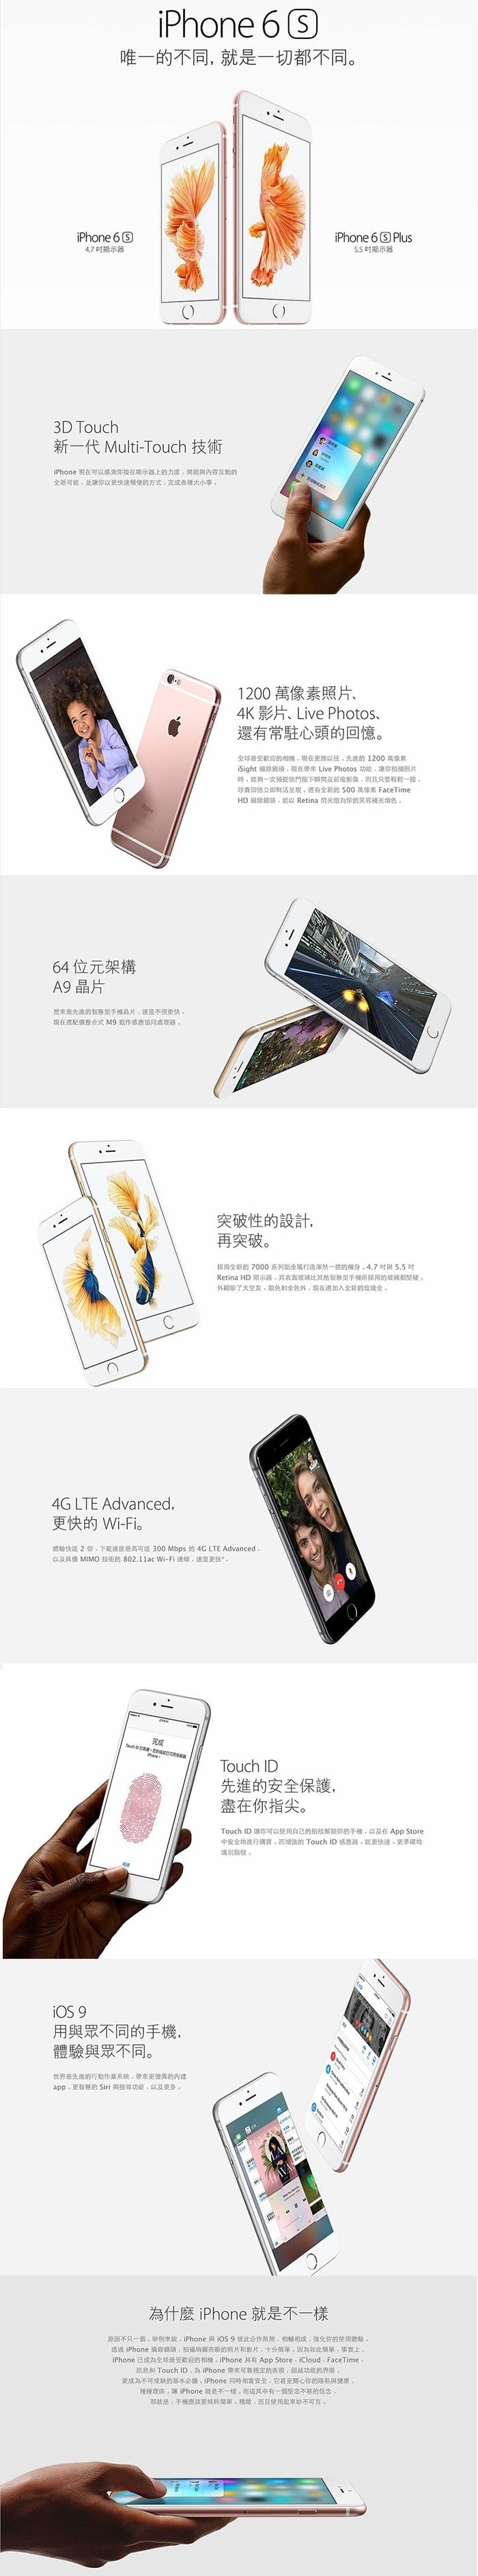 【Apple 蘋果】iPhone 6s Plus 32G 智慧手機